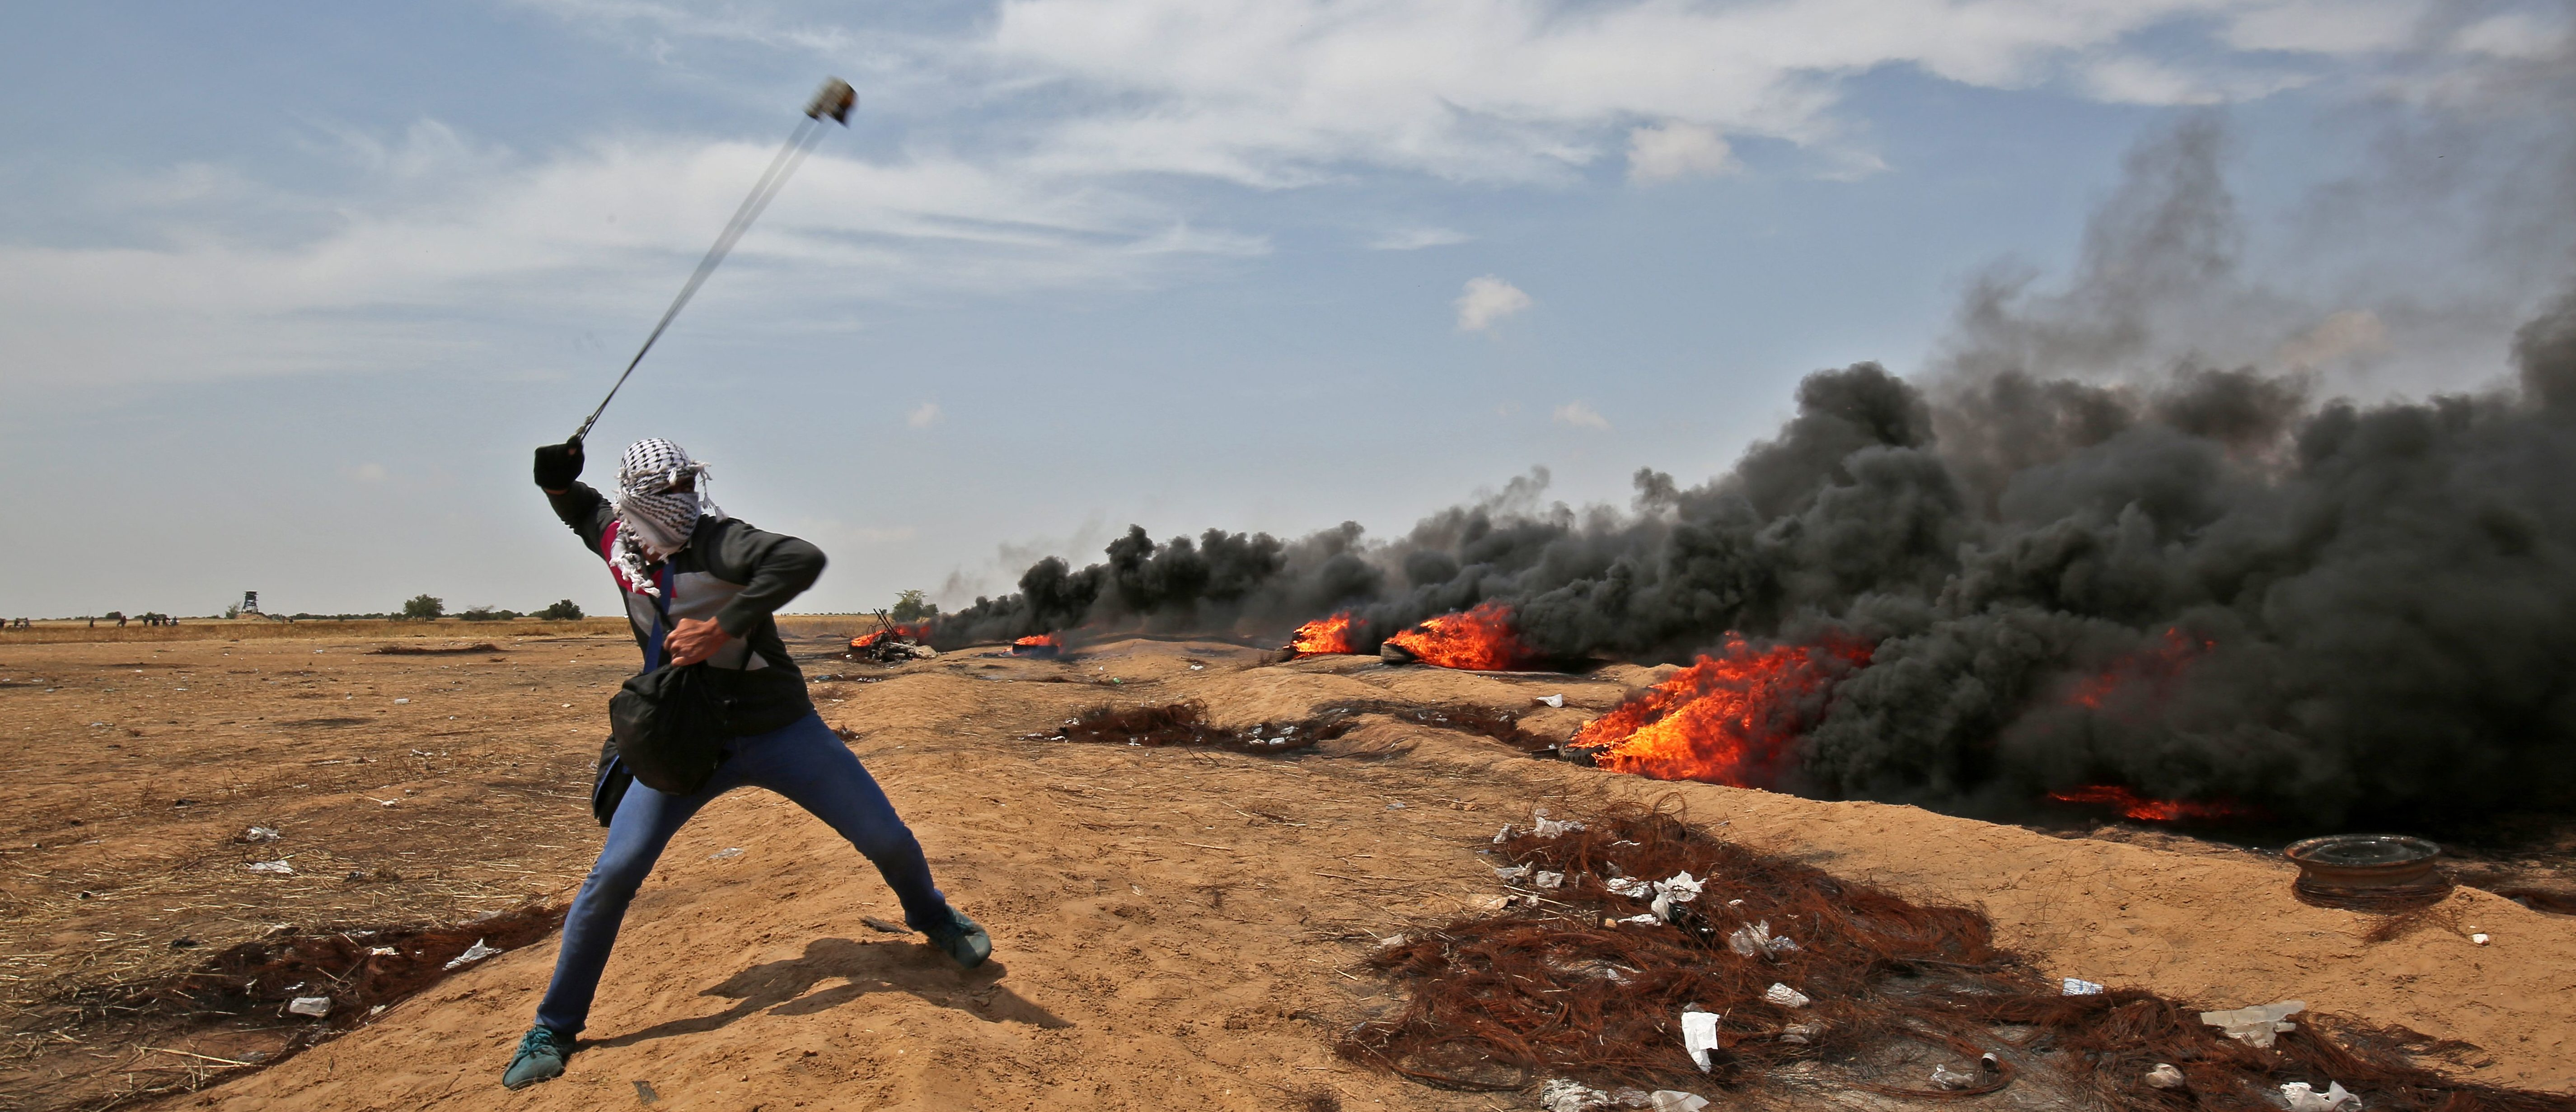 TOPSHOT - A Palestinian demonstrator uses a slingshot to throw stones towards Israeli security forces near the southern Gaza Strip town of Khan Yunis during the fifth straight Friday of mass demonstrations and clashes along the Gaza-Israel border on April 27, 2018. (Photo by SAID KHATIB / AFP) (Photo credit should read SAID KHATIB/AFP/Getty Images)